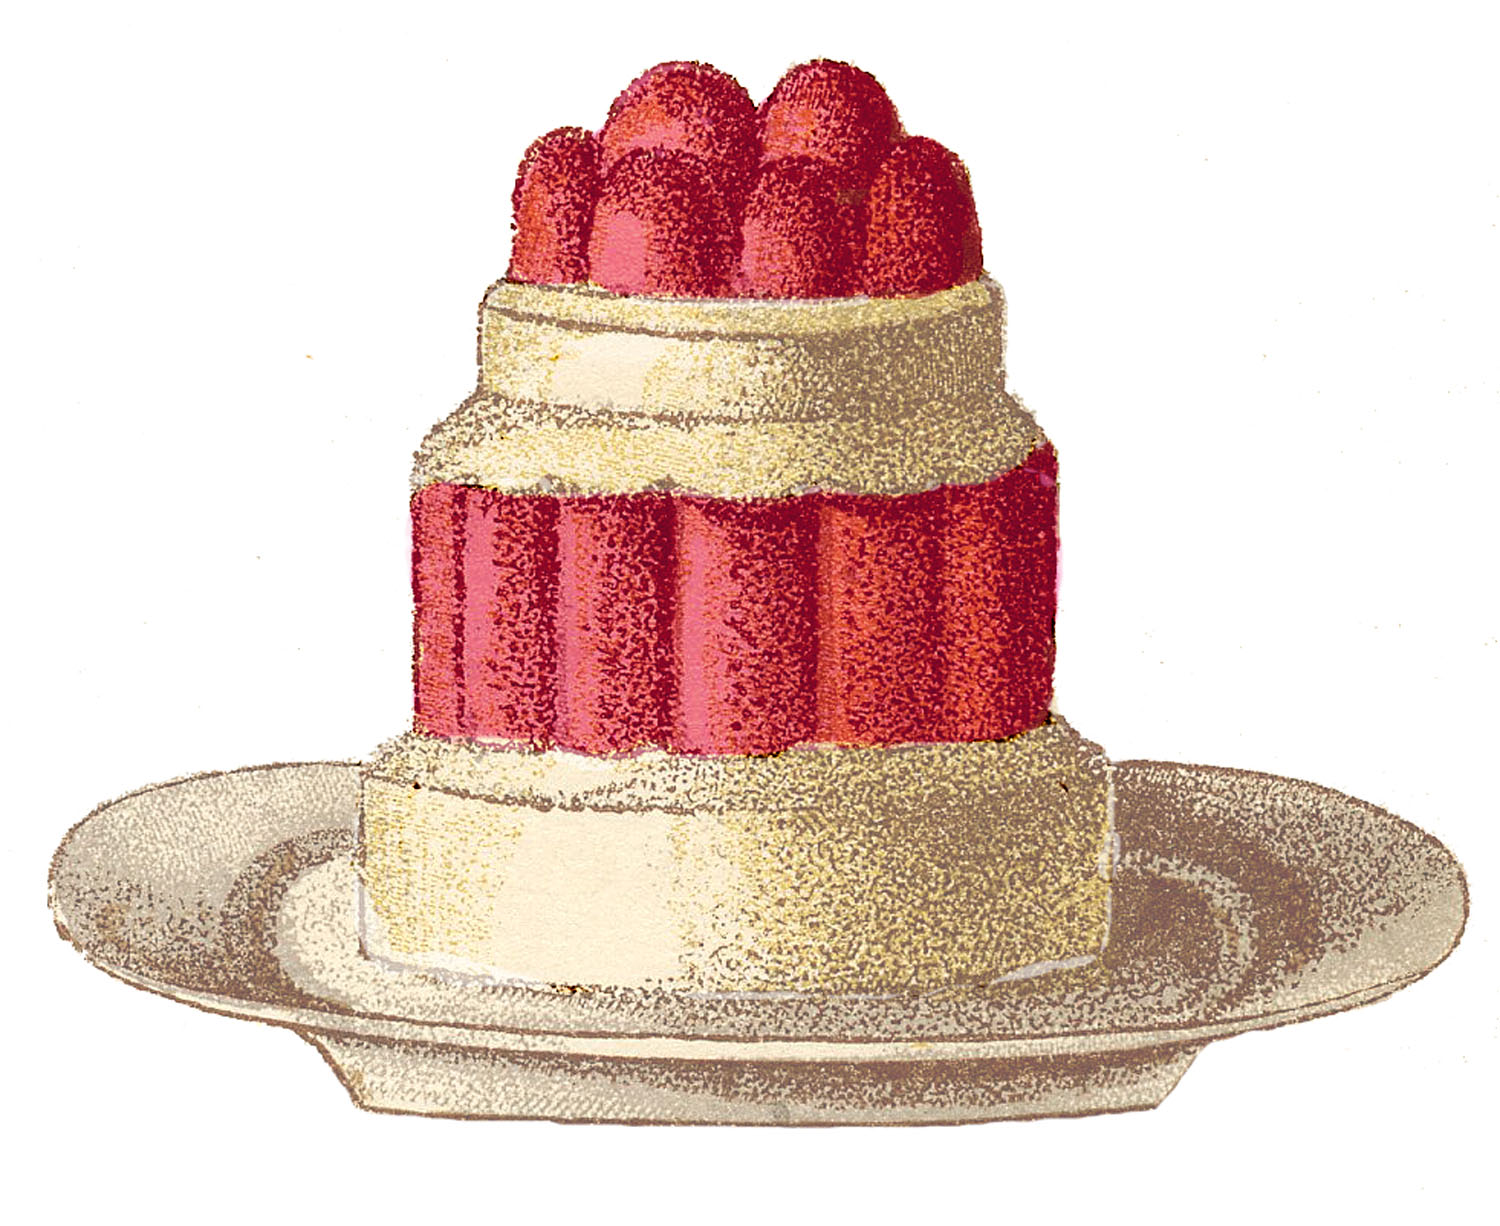 Vintage Clip Art - French Desserts - The Graphics Fairy